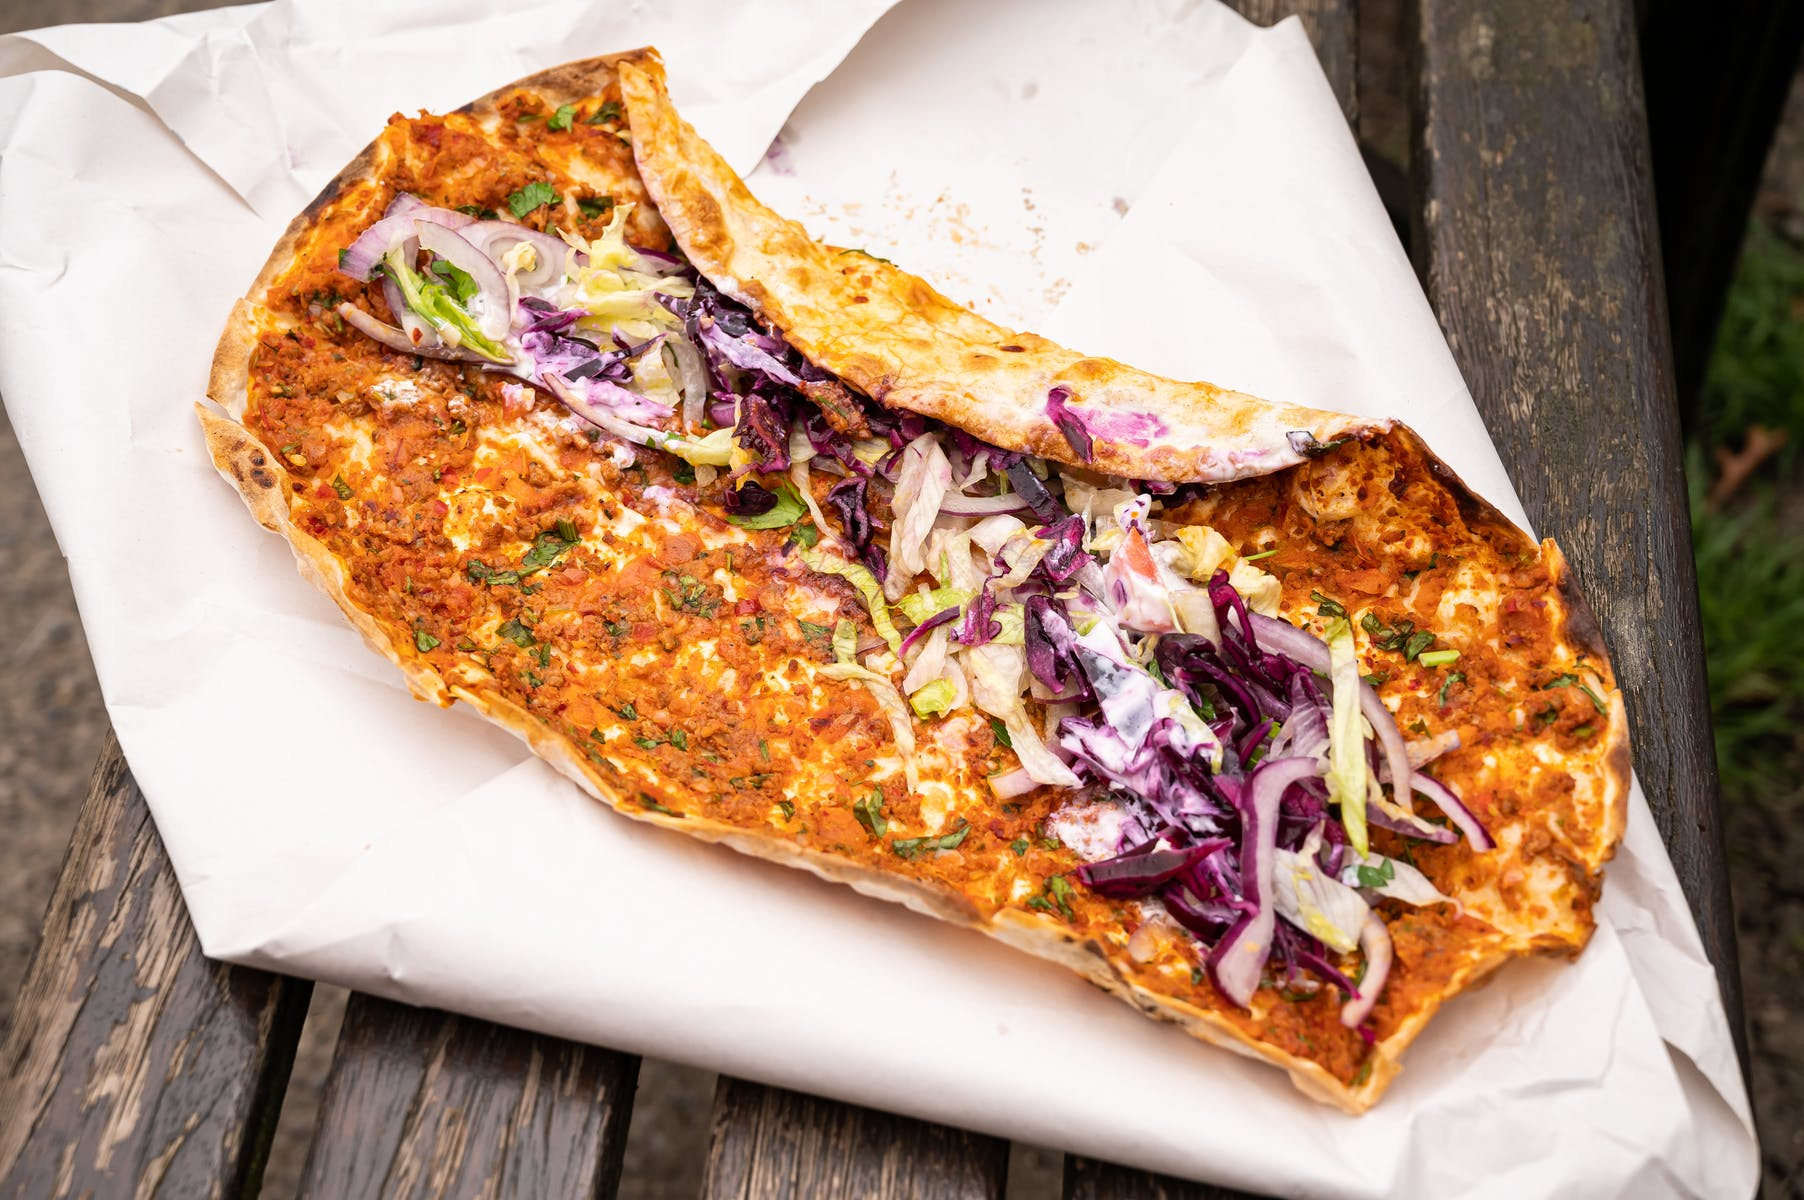 The Best Lahmacun In North London - London - The Infatuation